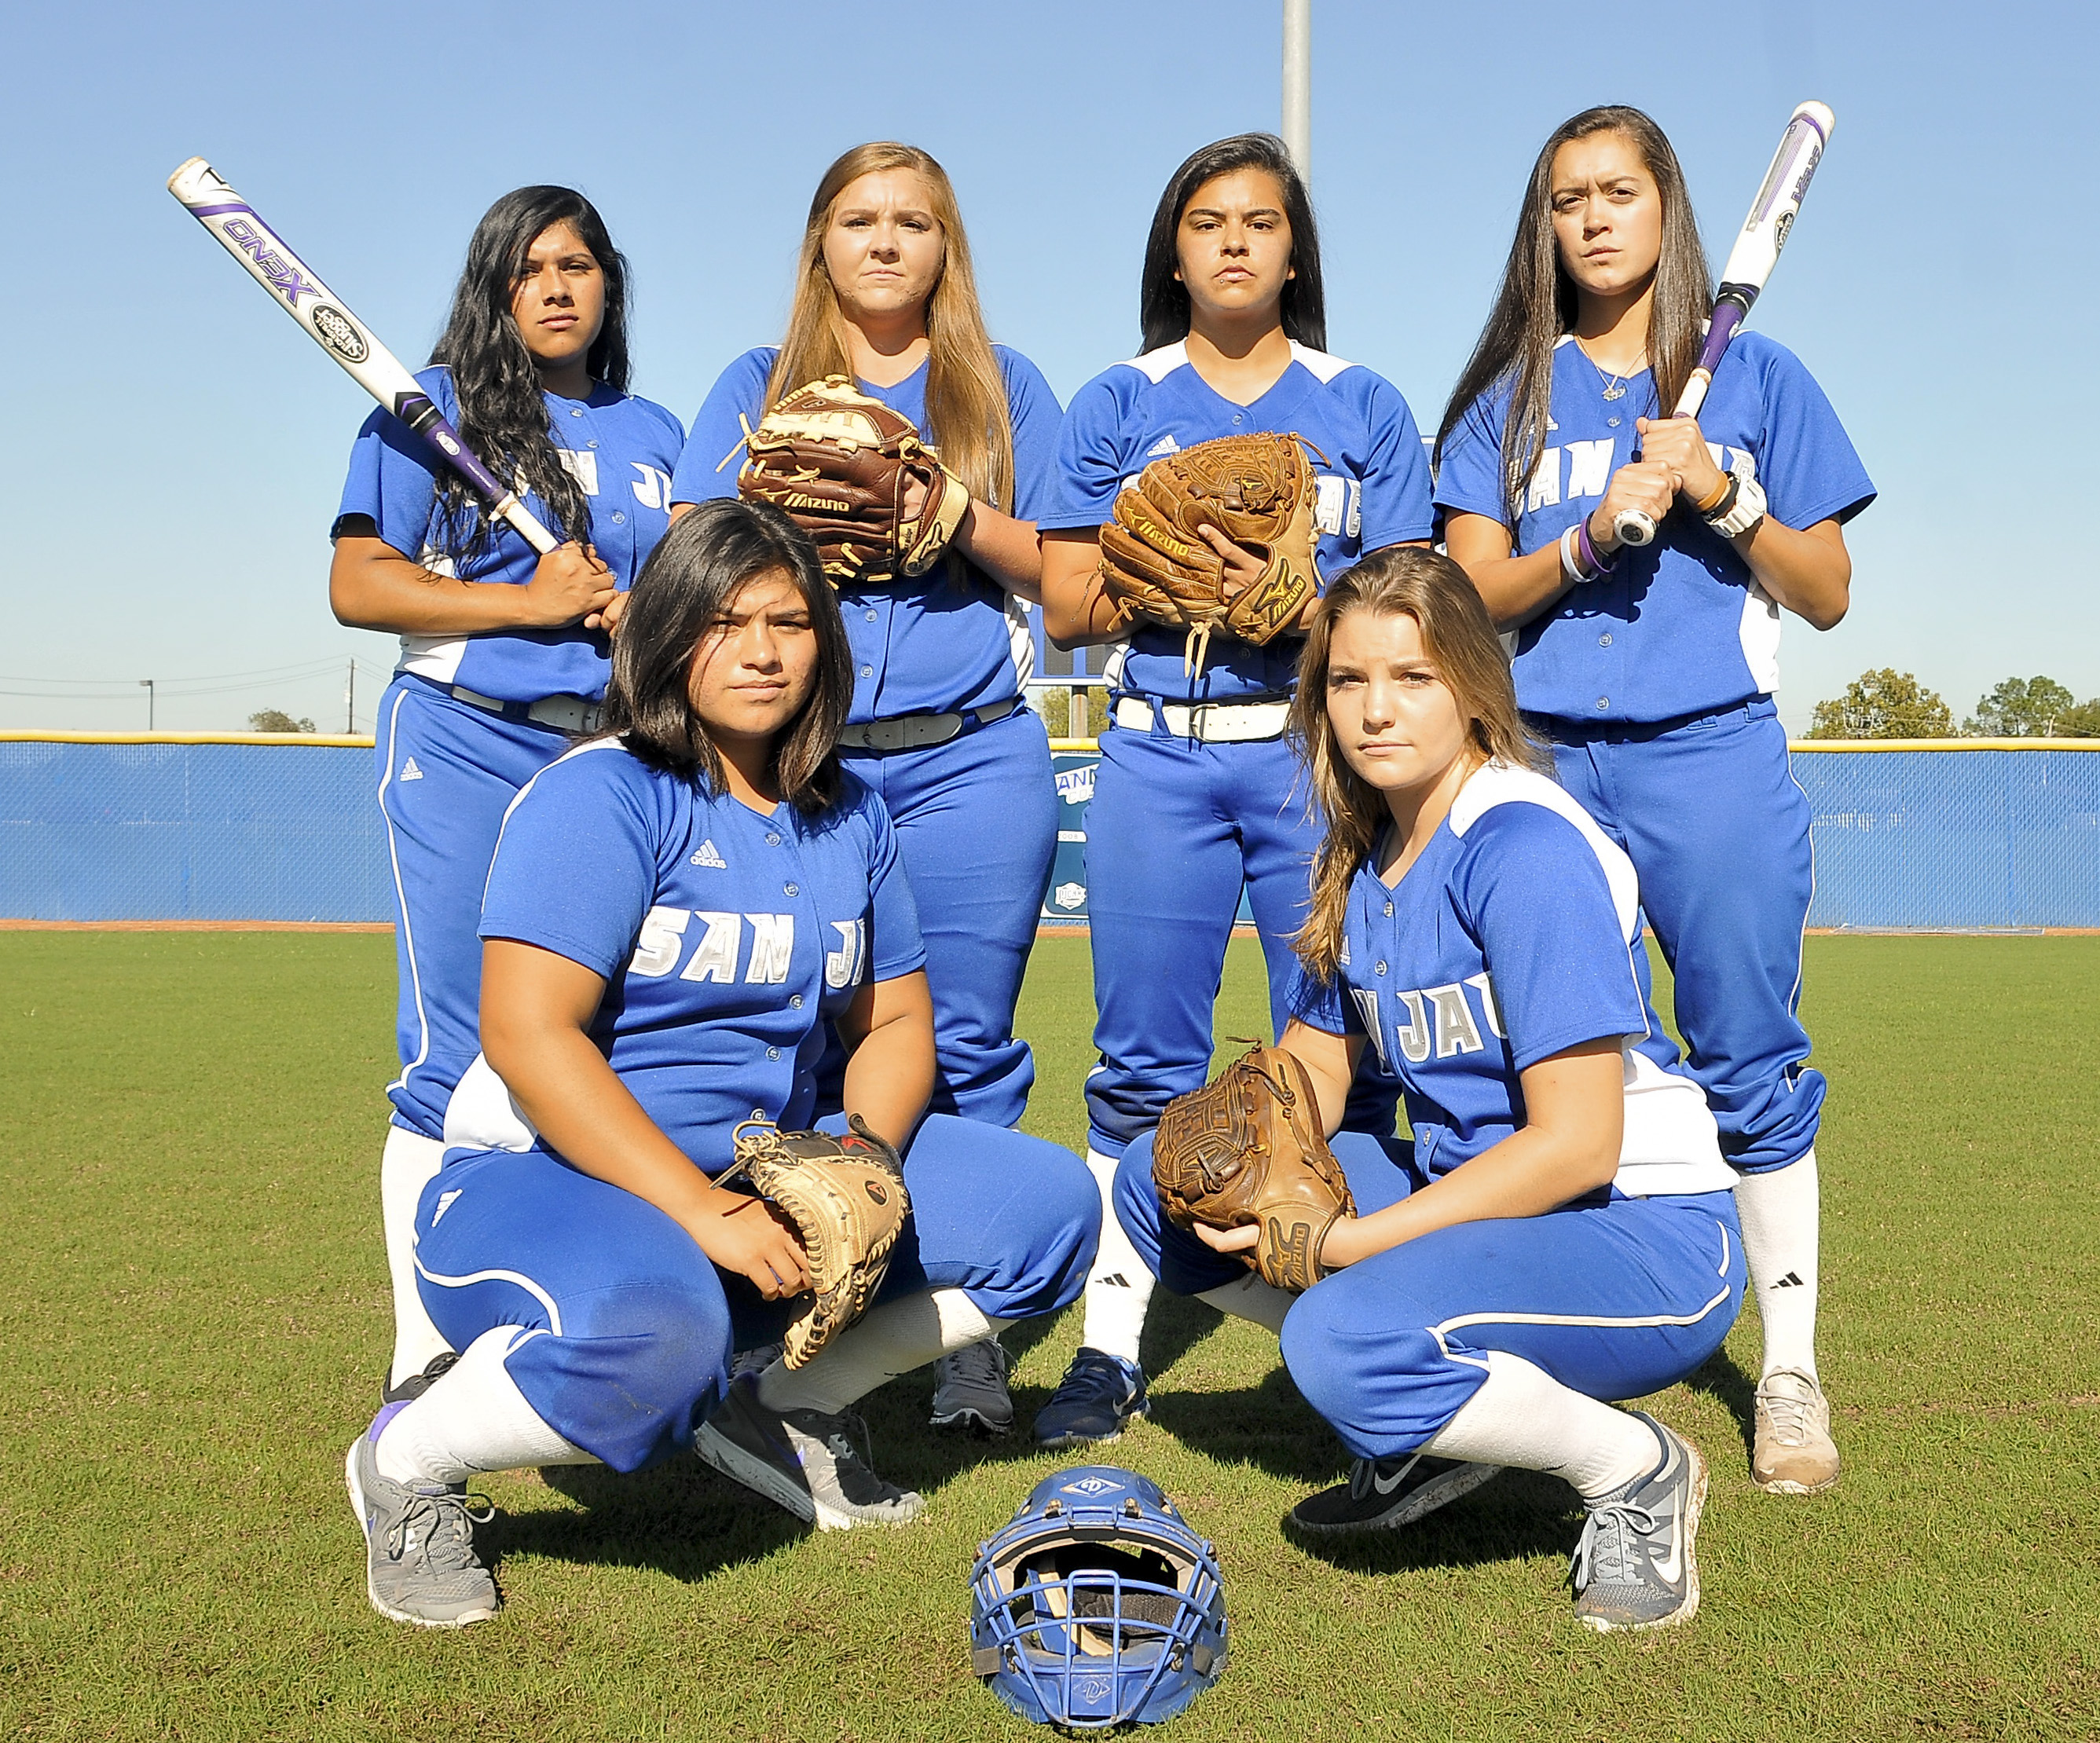 San Jacinto College softball to host tryouts: Interested players should report on Saturday, June 11